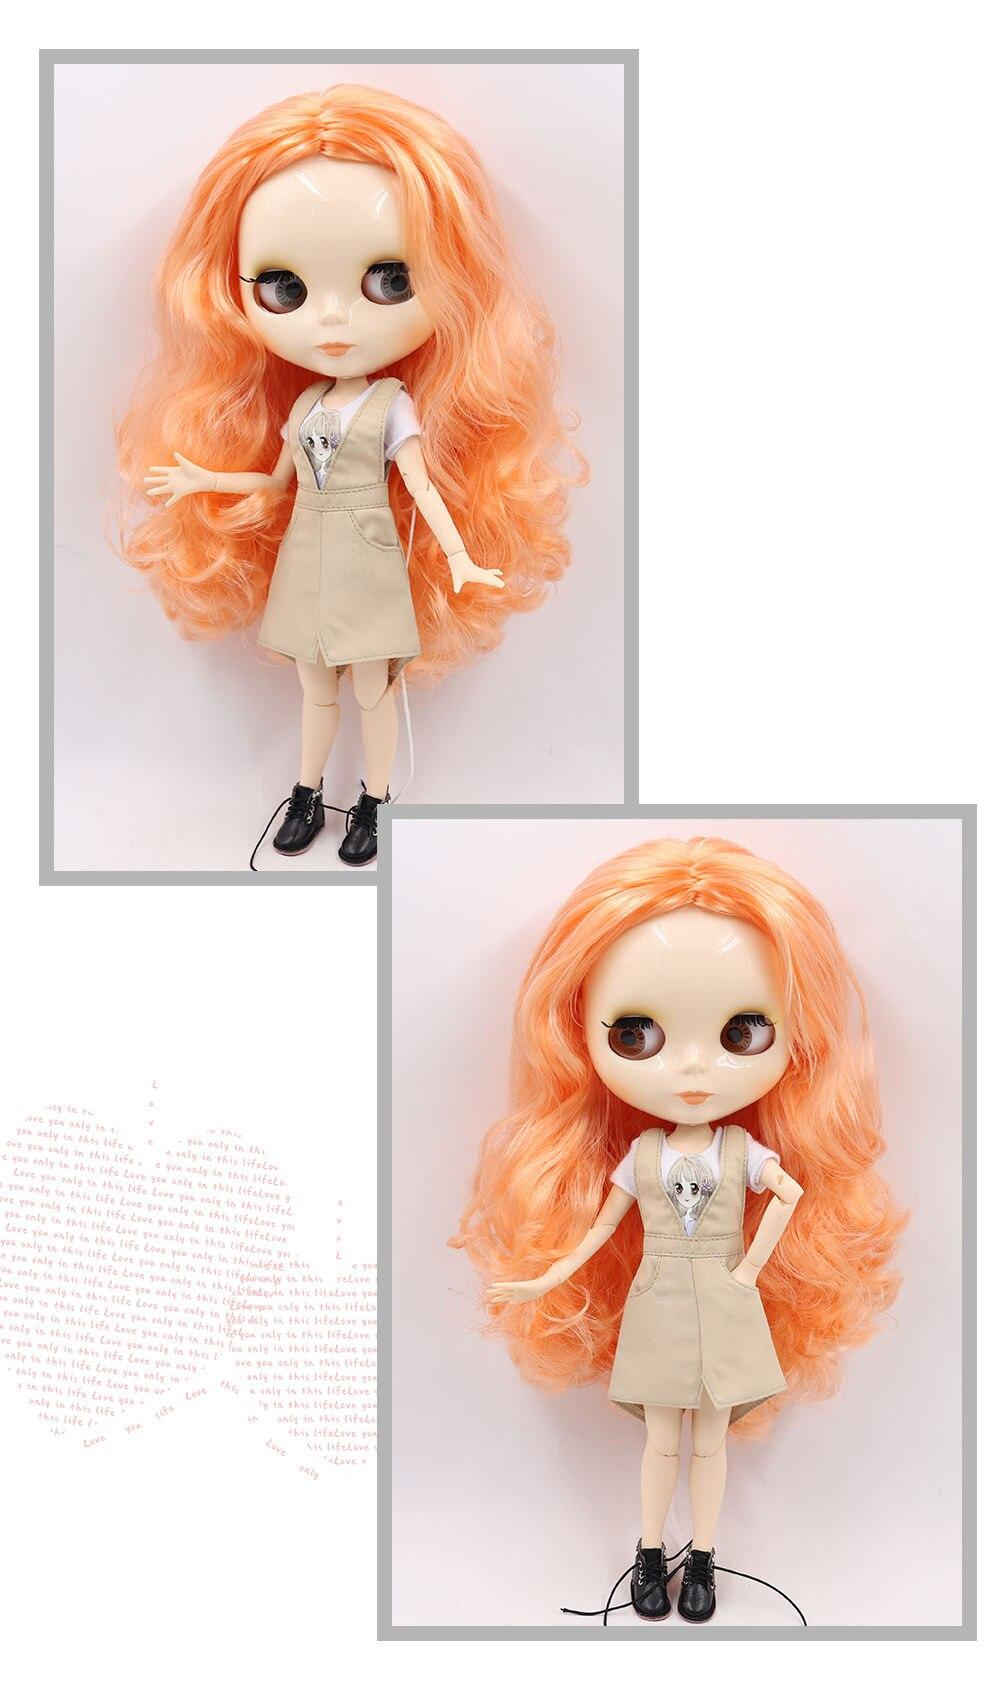 Neo Blythe Doll with Orange Hair, White Skin, Shiny Face & Jointed Body 1